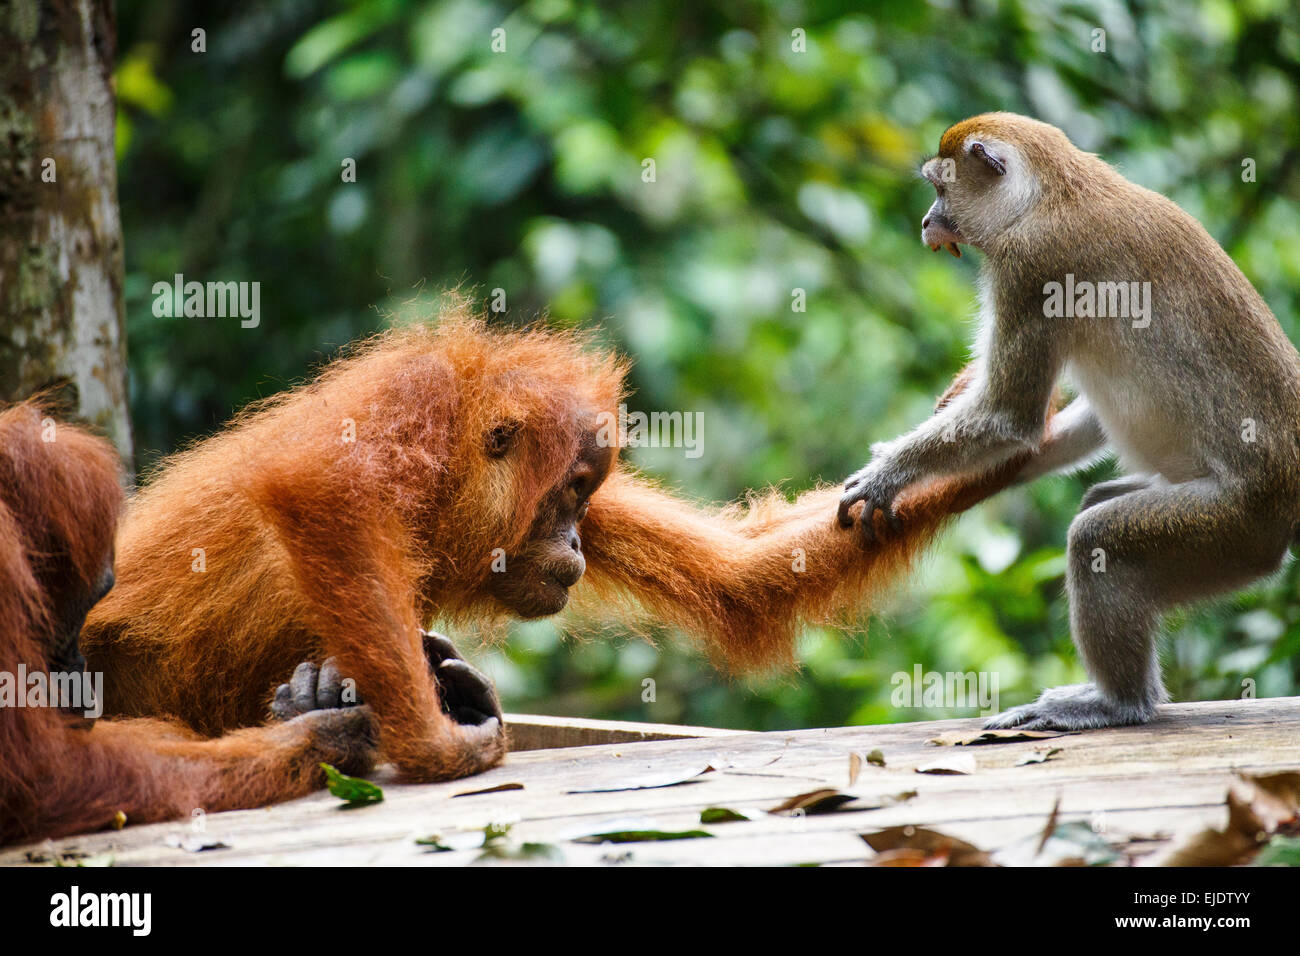 A child Sumatran orangutan (Pongo abelii) fights with a macaque in Gunung Leuser National Park in Northern Sumatra. - Stock Image